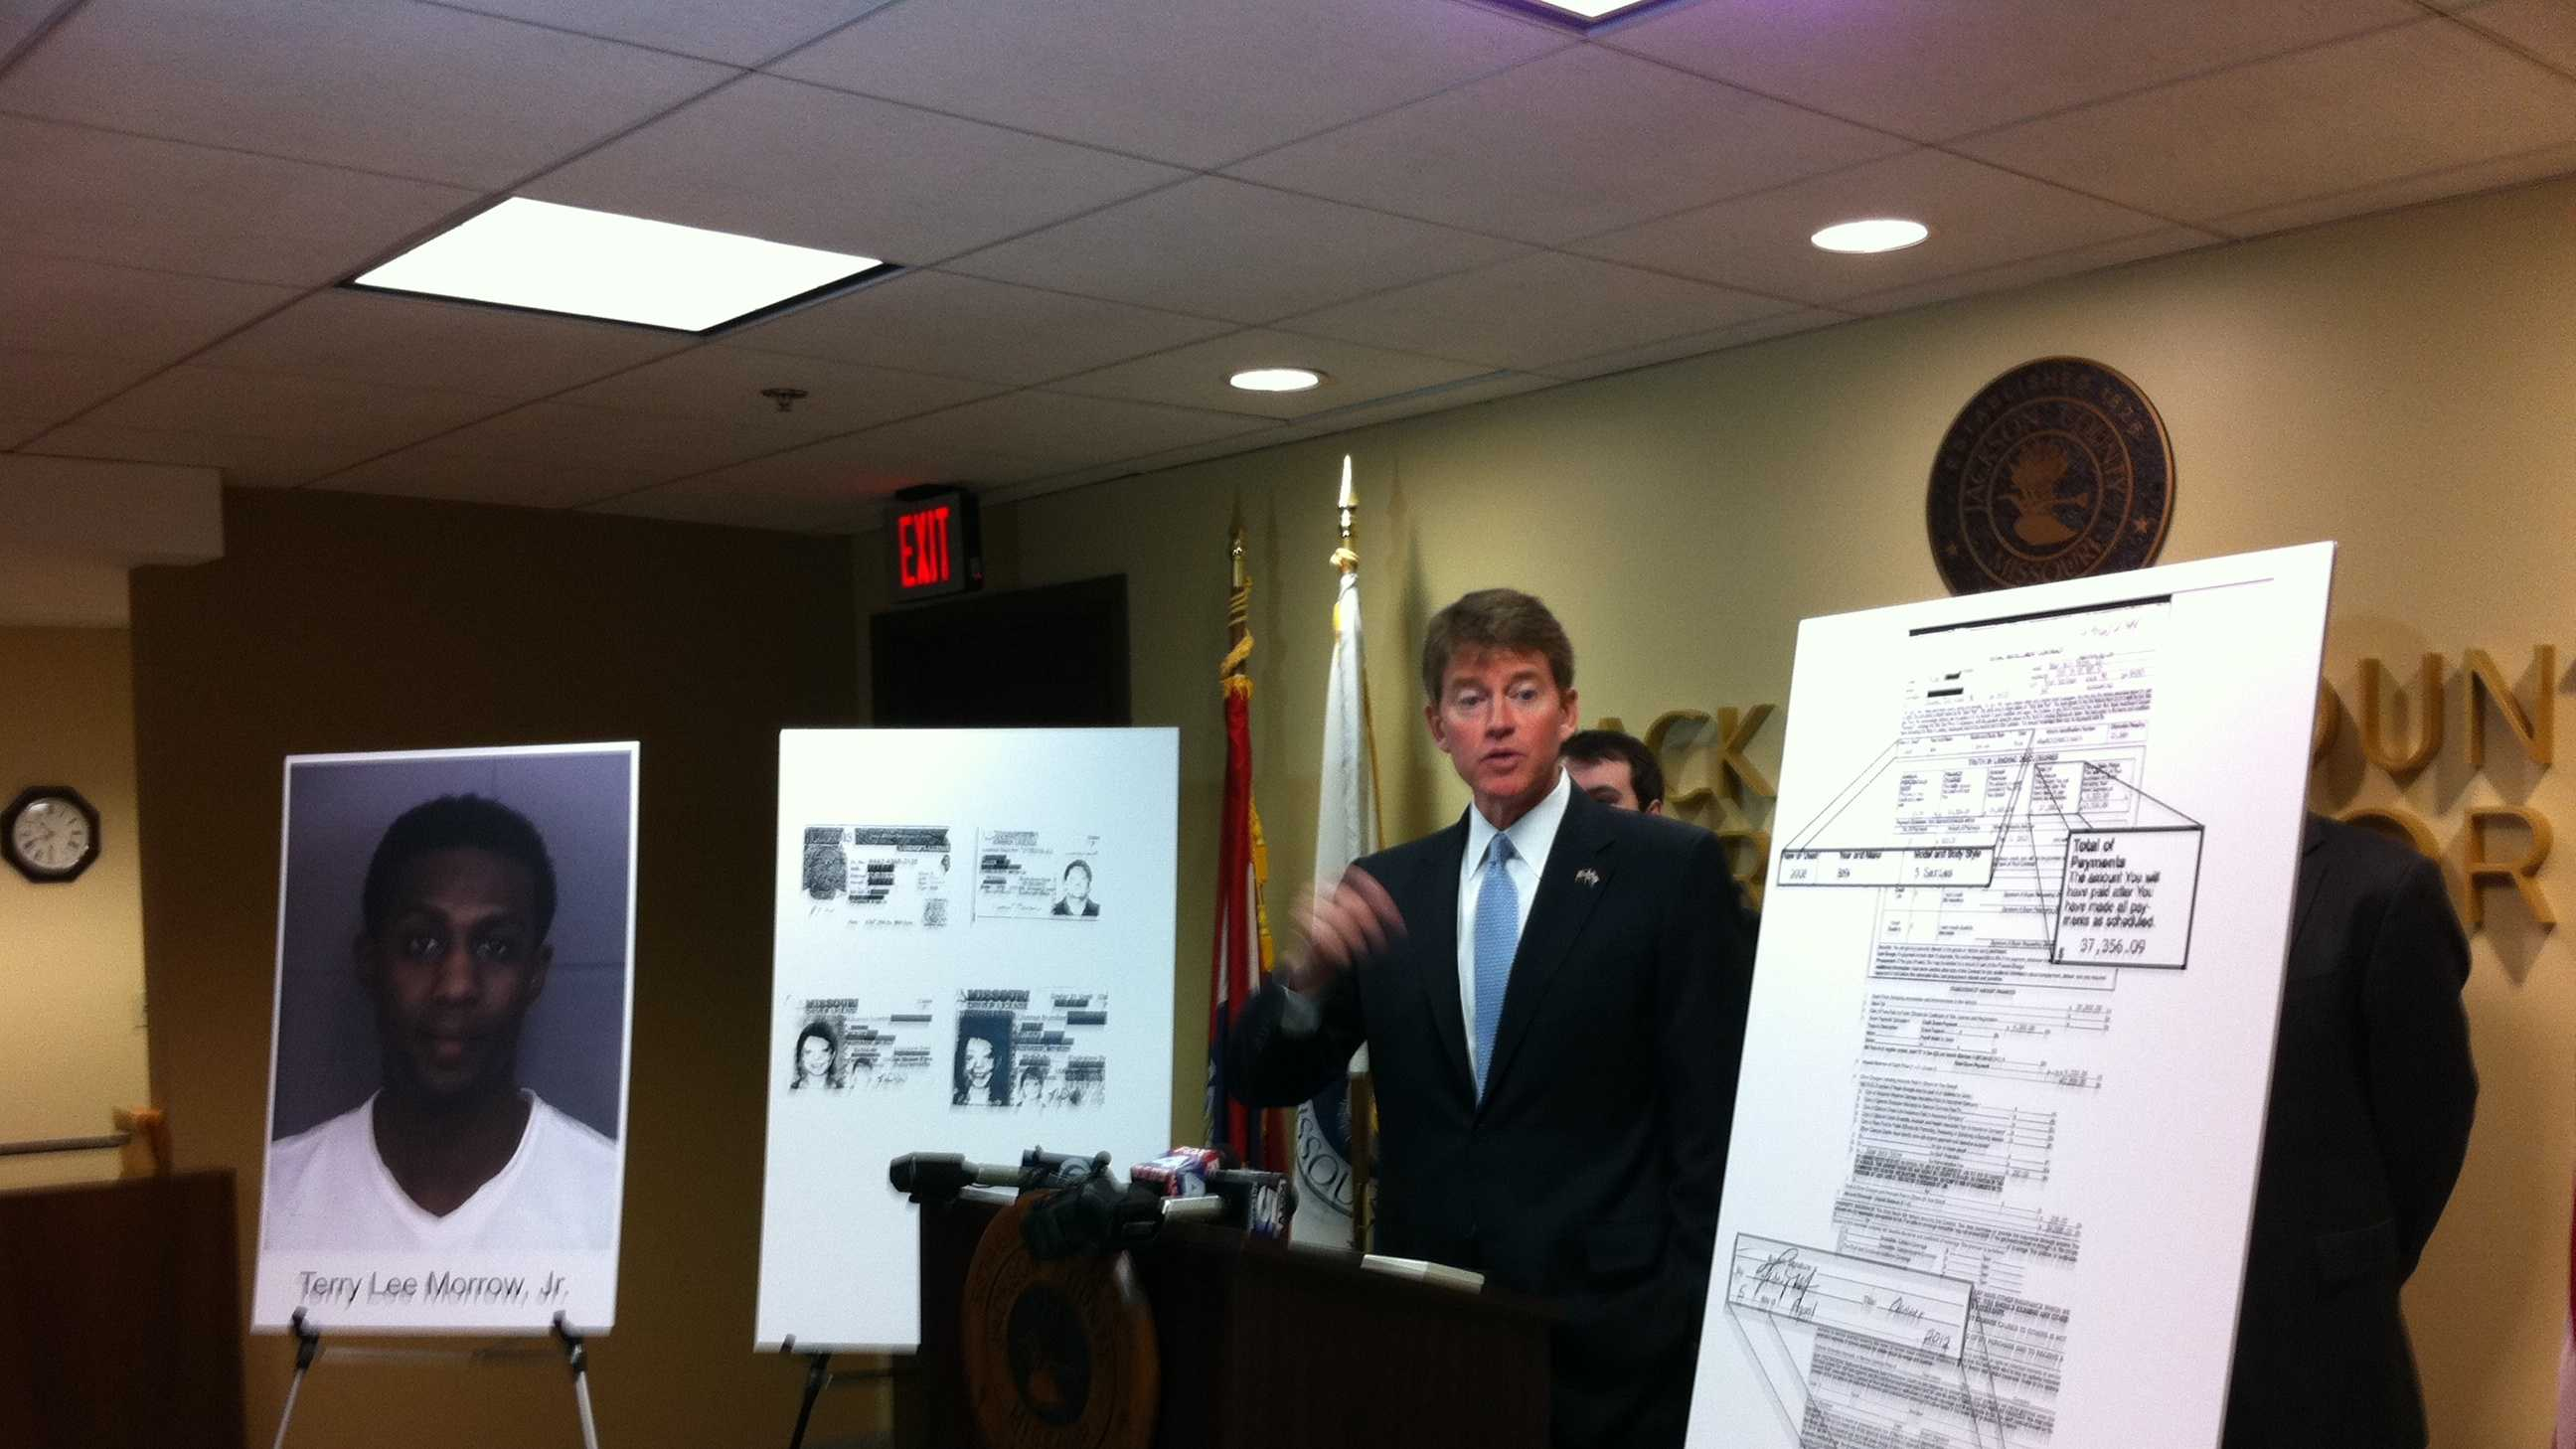 Chris Koster news conference